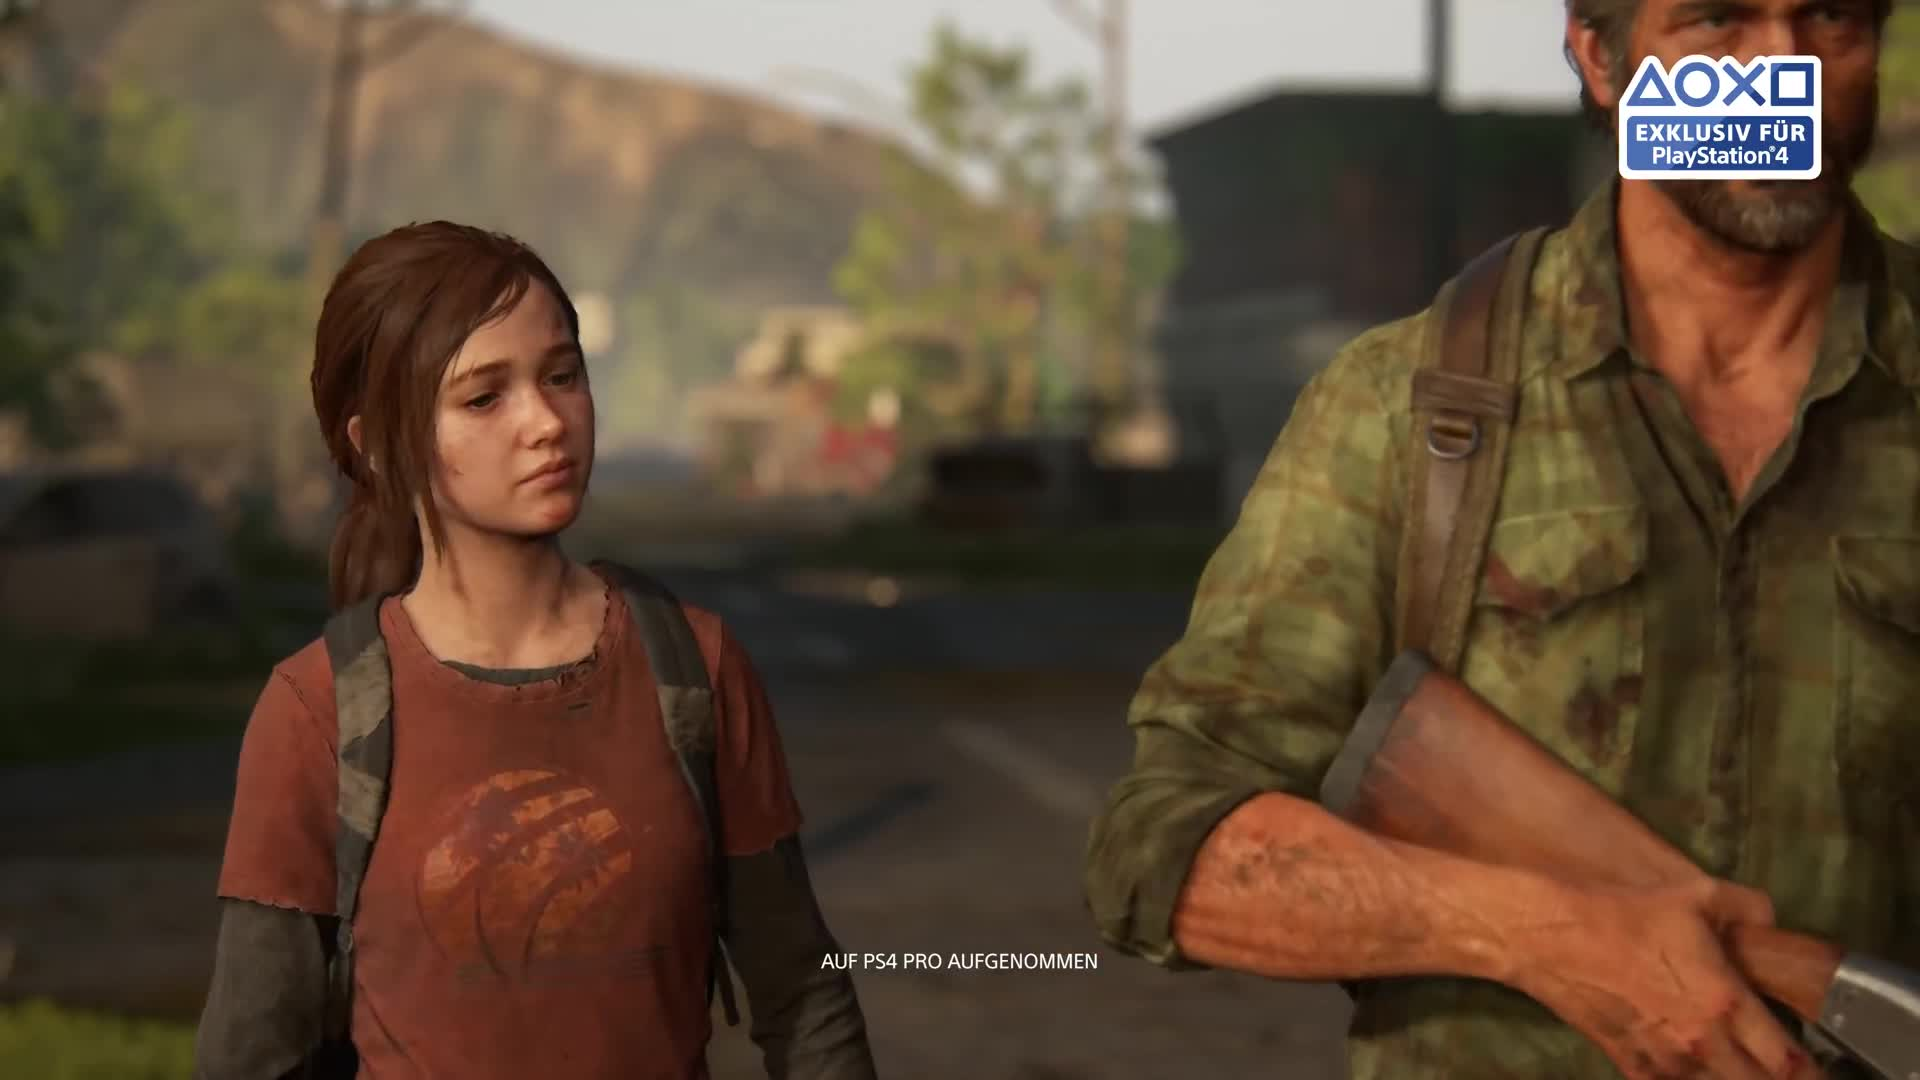 Trailer, Sony, PlayStation 4, Playstation, PS4, Sony PlayStation 4, Sony PS4, The Last of Us, Naughty Dog, The Last of Us part 2, The Last of Us 2